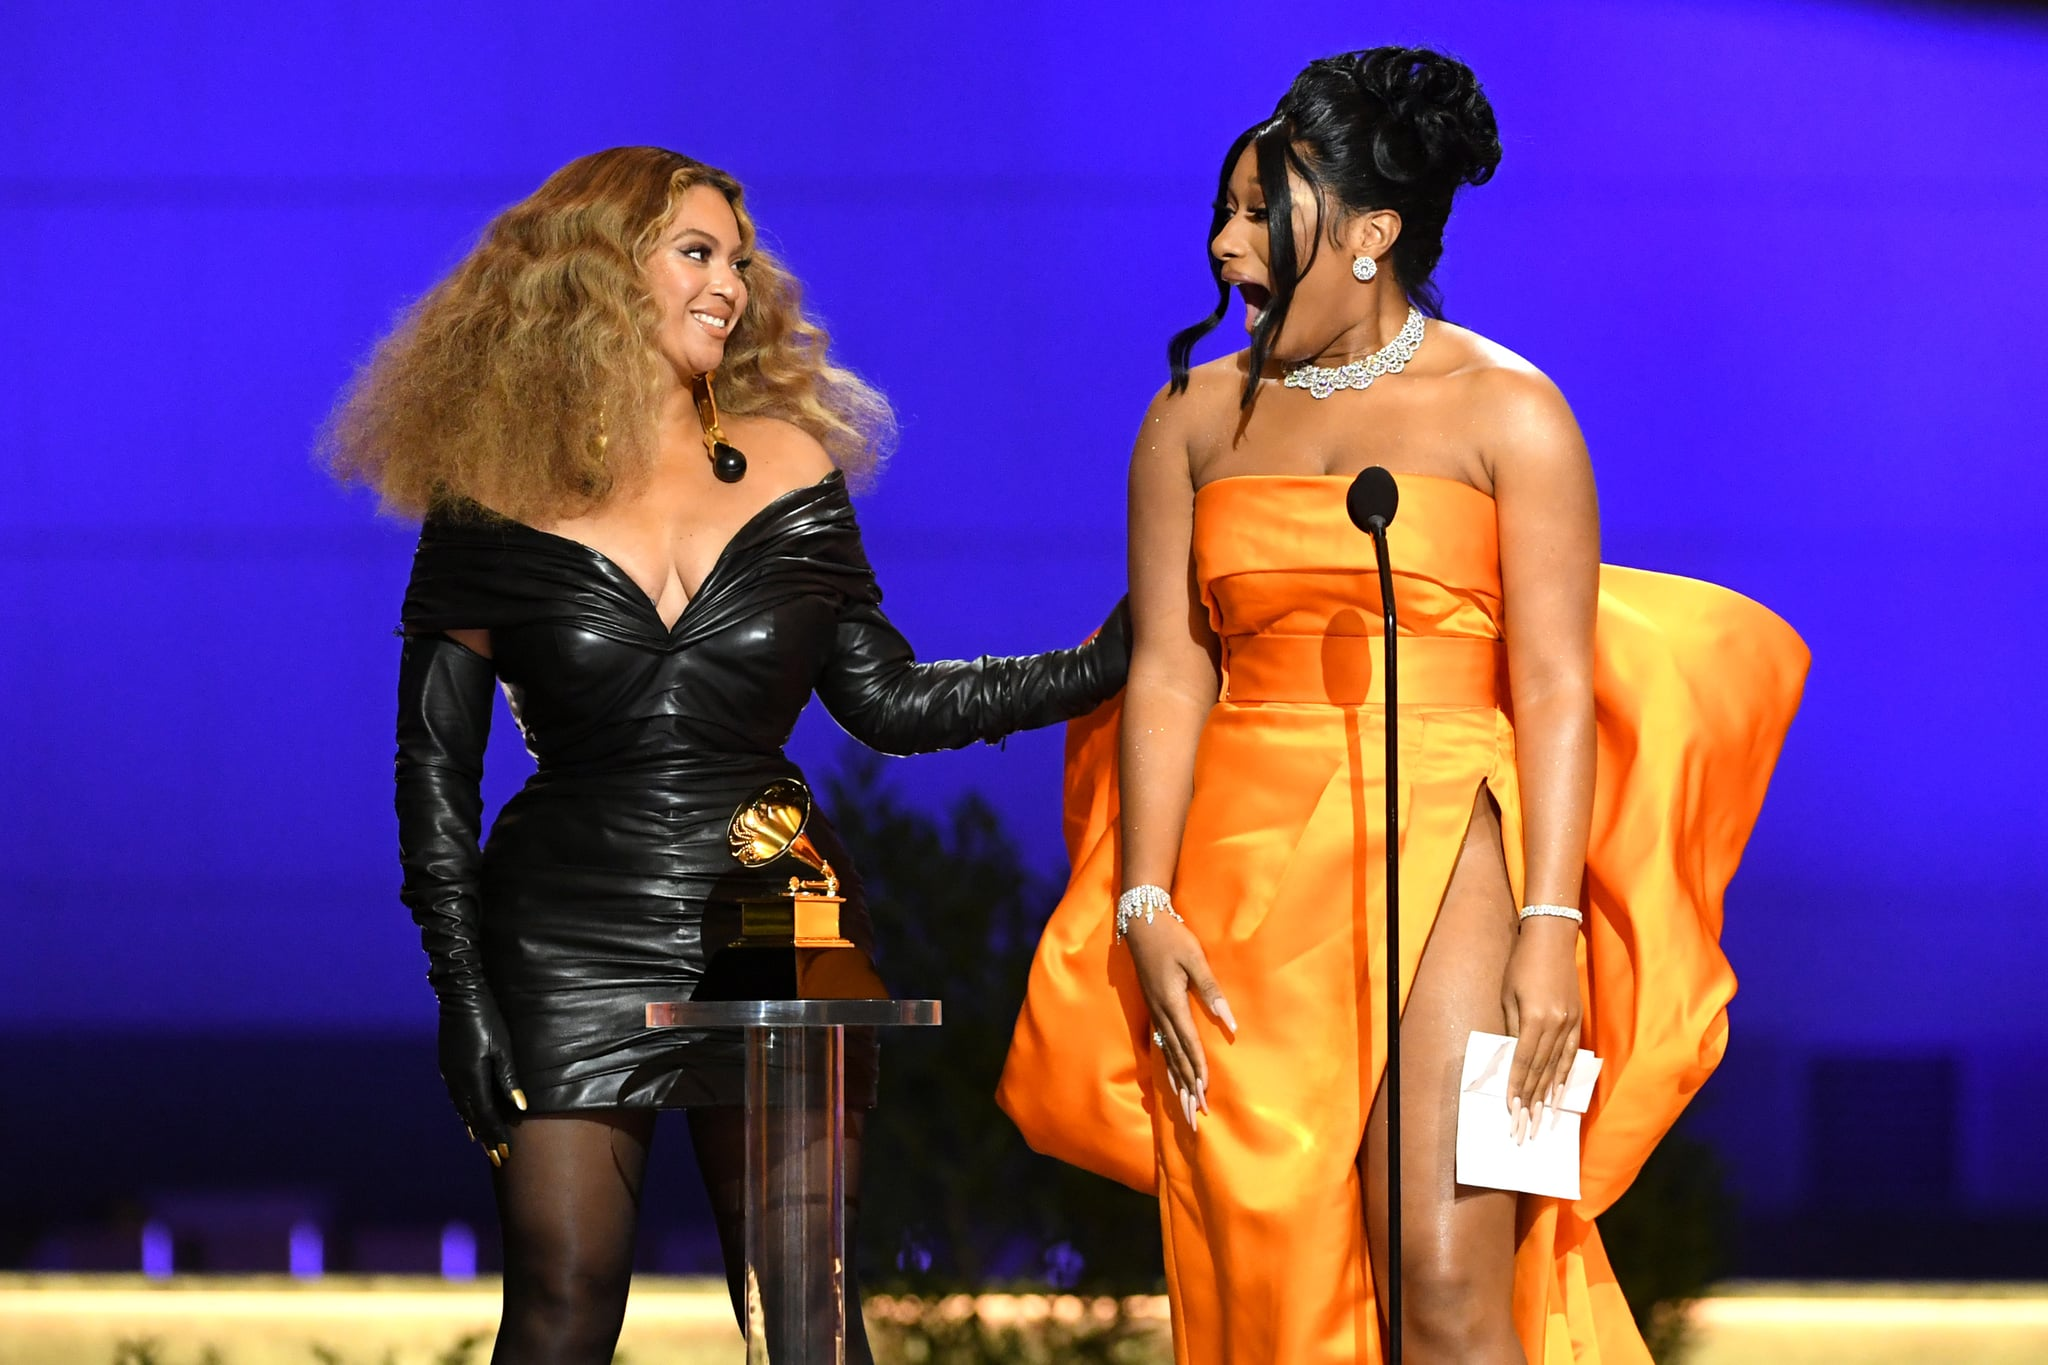 LOS ANGELES, CALIFORNIA - MARCH 14: (L-R) Beyoncé and Megan Thee Stallion accept the Best Rap Performance award for 'Savage' onstage during the 63rd Annual GRAMMY Awards at Los Angeles Convention Centre on March 14, 2021 in Los Angeles, California. (Photo by Kevin Winter/Getty Images for The Recording Academy)